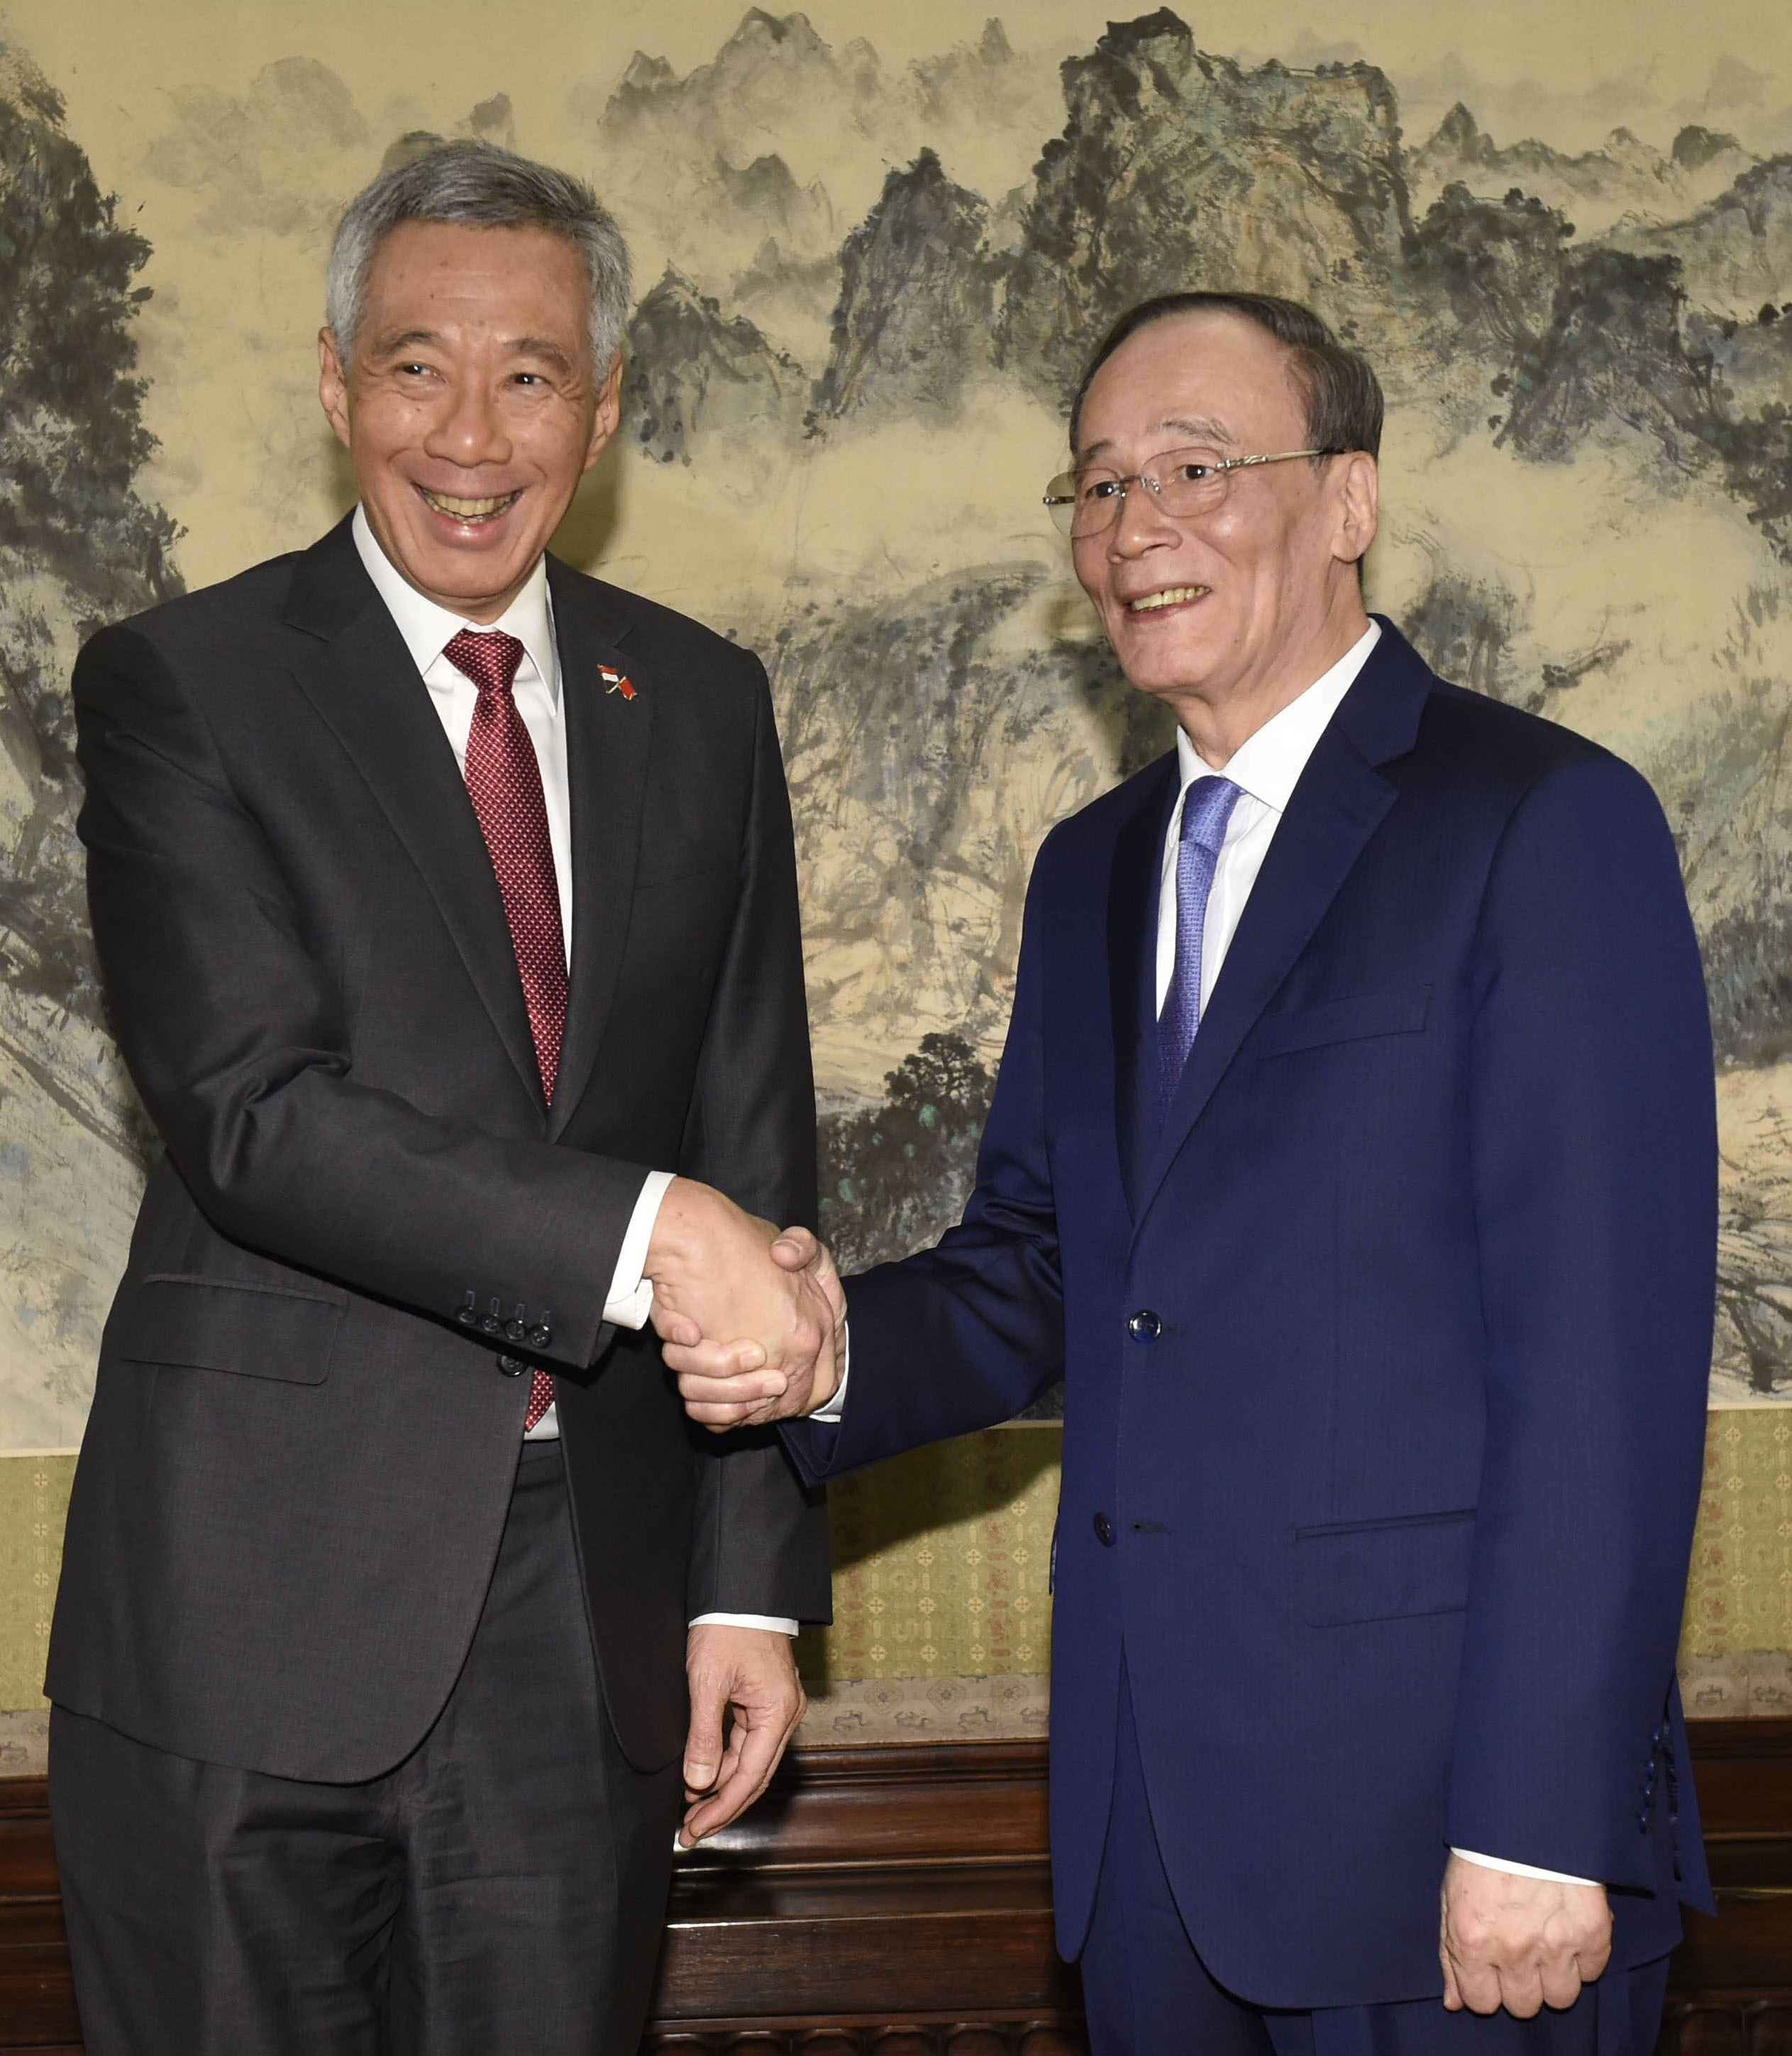 Chinas vice president wang qishan given key foreign policy role chinas vice president wang qishan right shakes hands with singapores prime minister lee hsien loong before a meeting in beijing last month photo kyodo stopboris Gallery